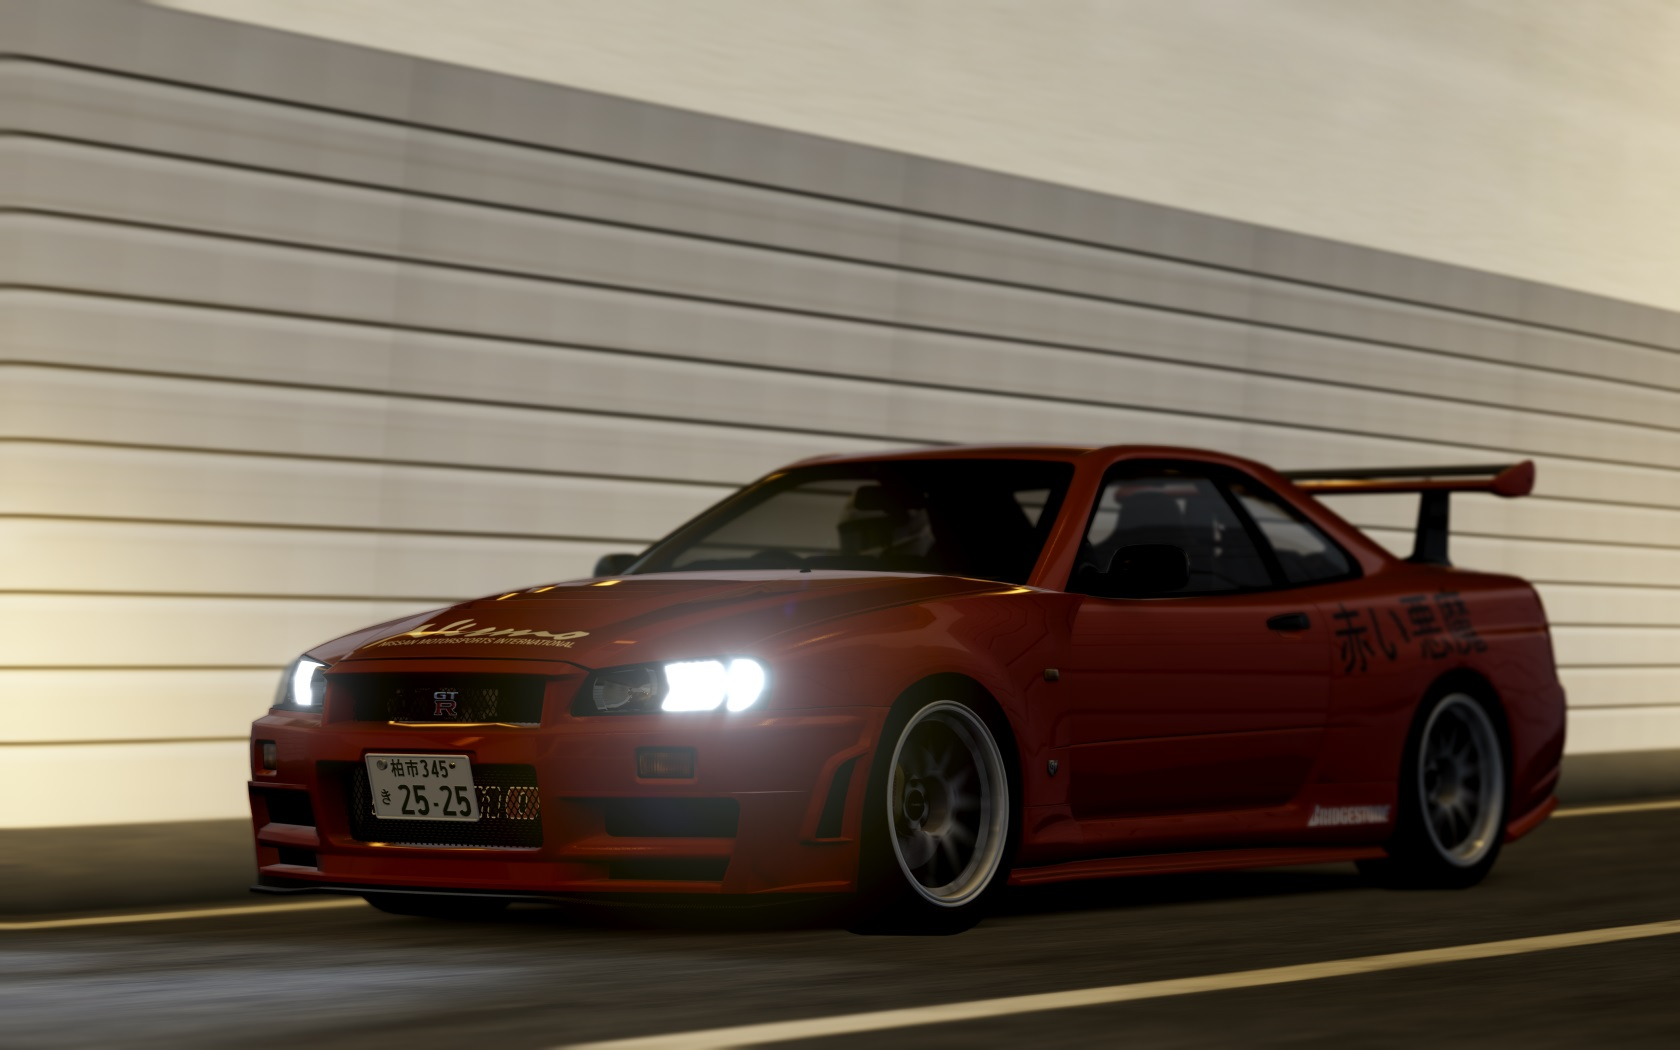 Screenshot_kgk_nissan_skyline_r34_maxy_c1-midnight_v13_24-11-118-16-6-49.jpg